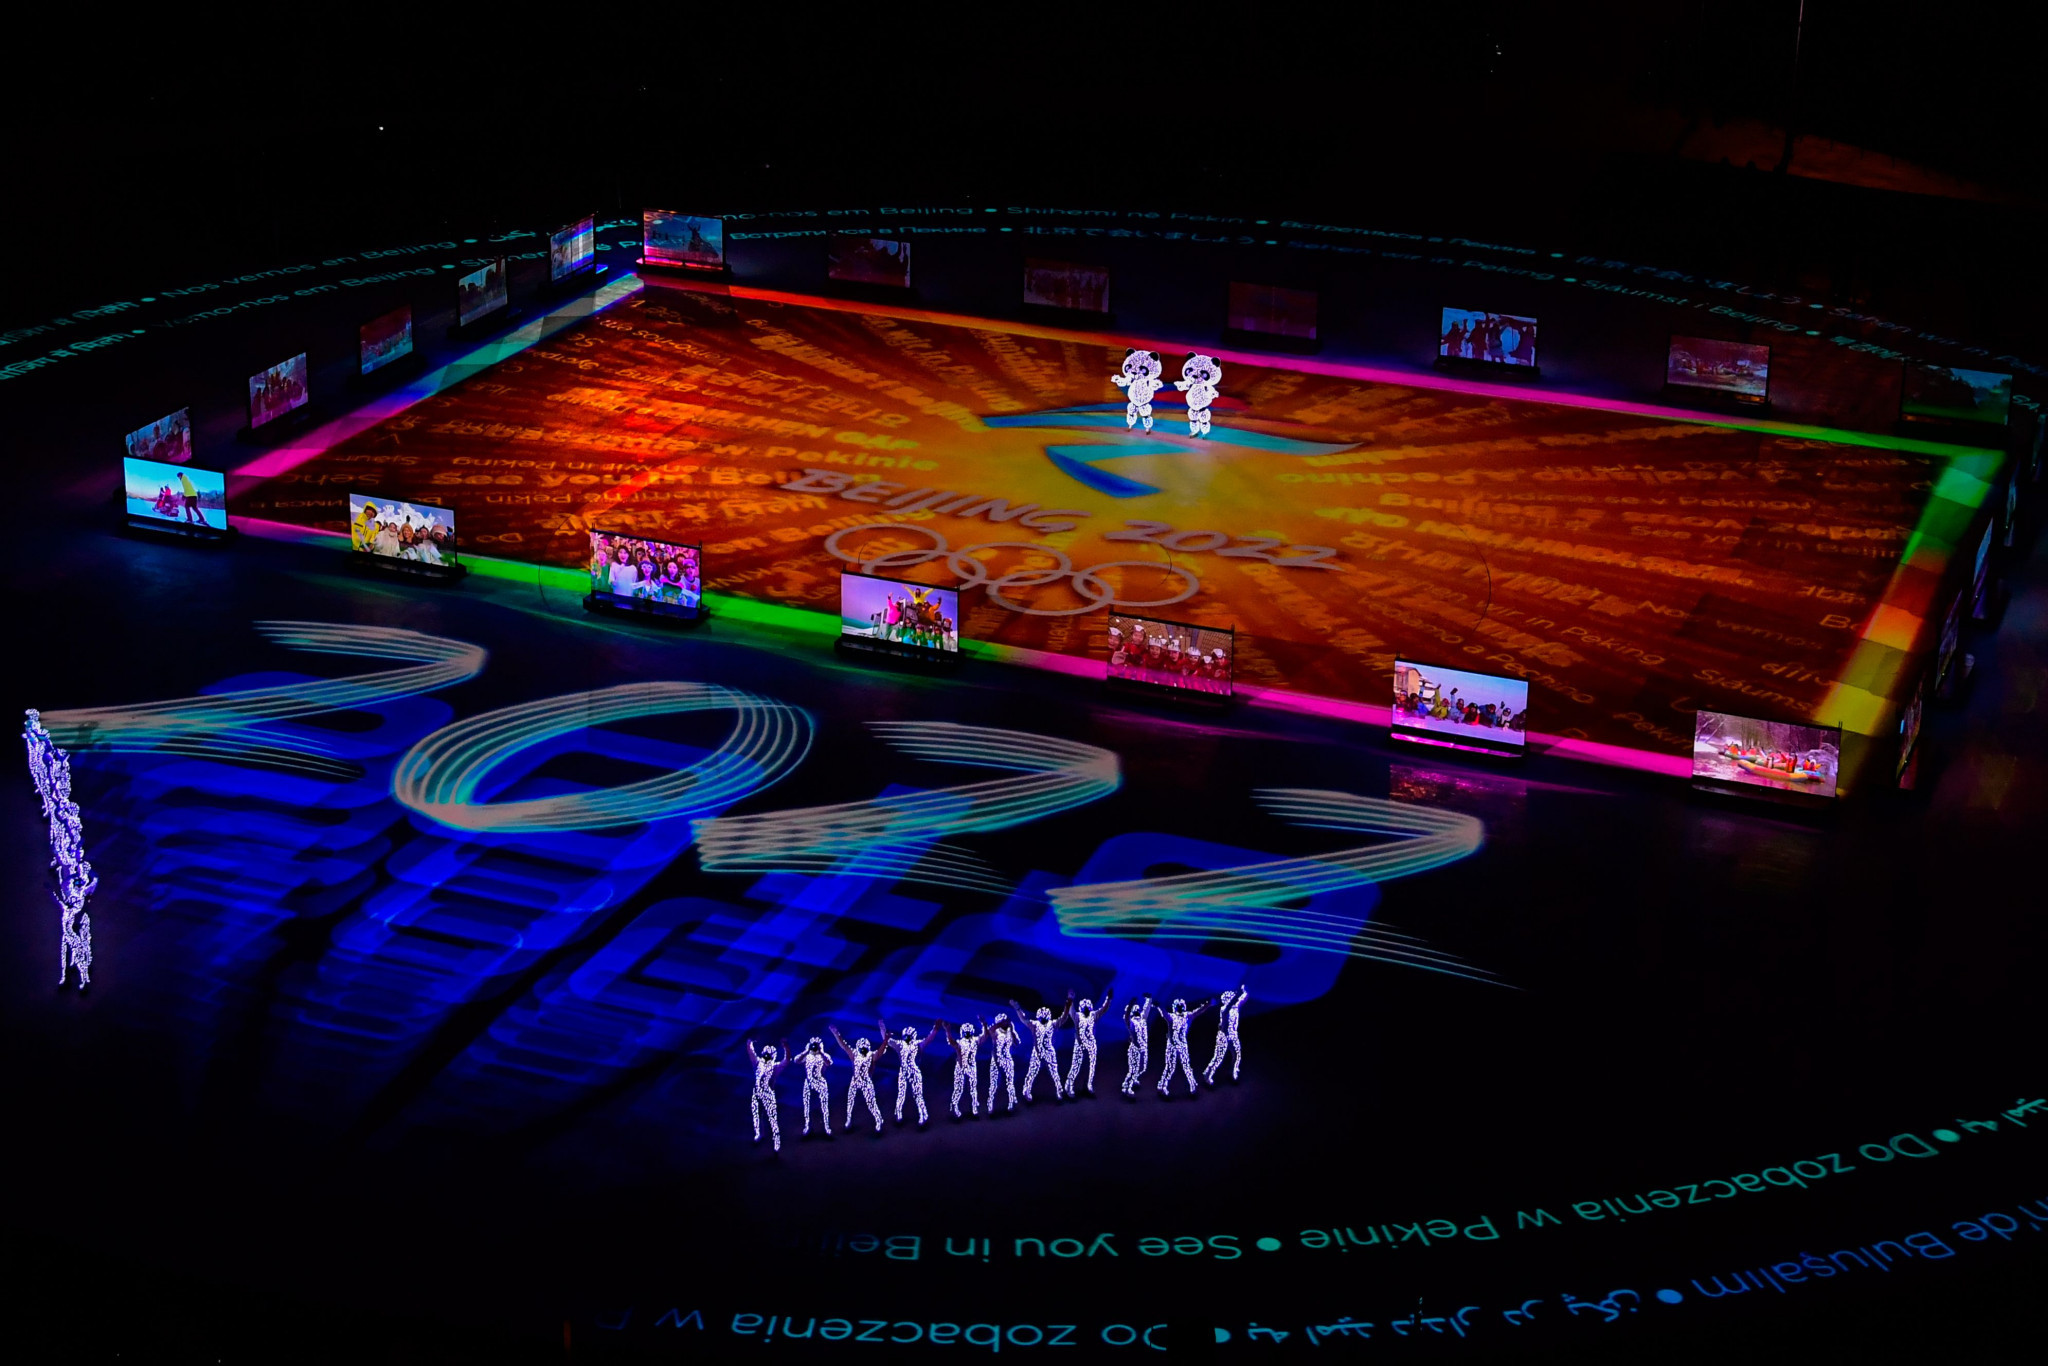 A presentation was given by Beijing, which will host the next edition of the Winter Olympics in 2022 ©Getty Images